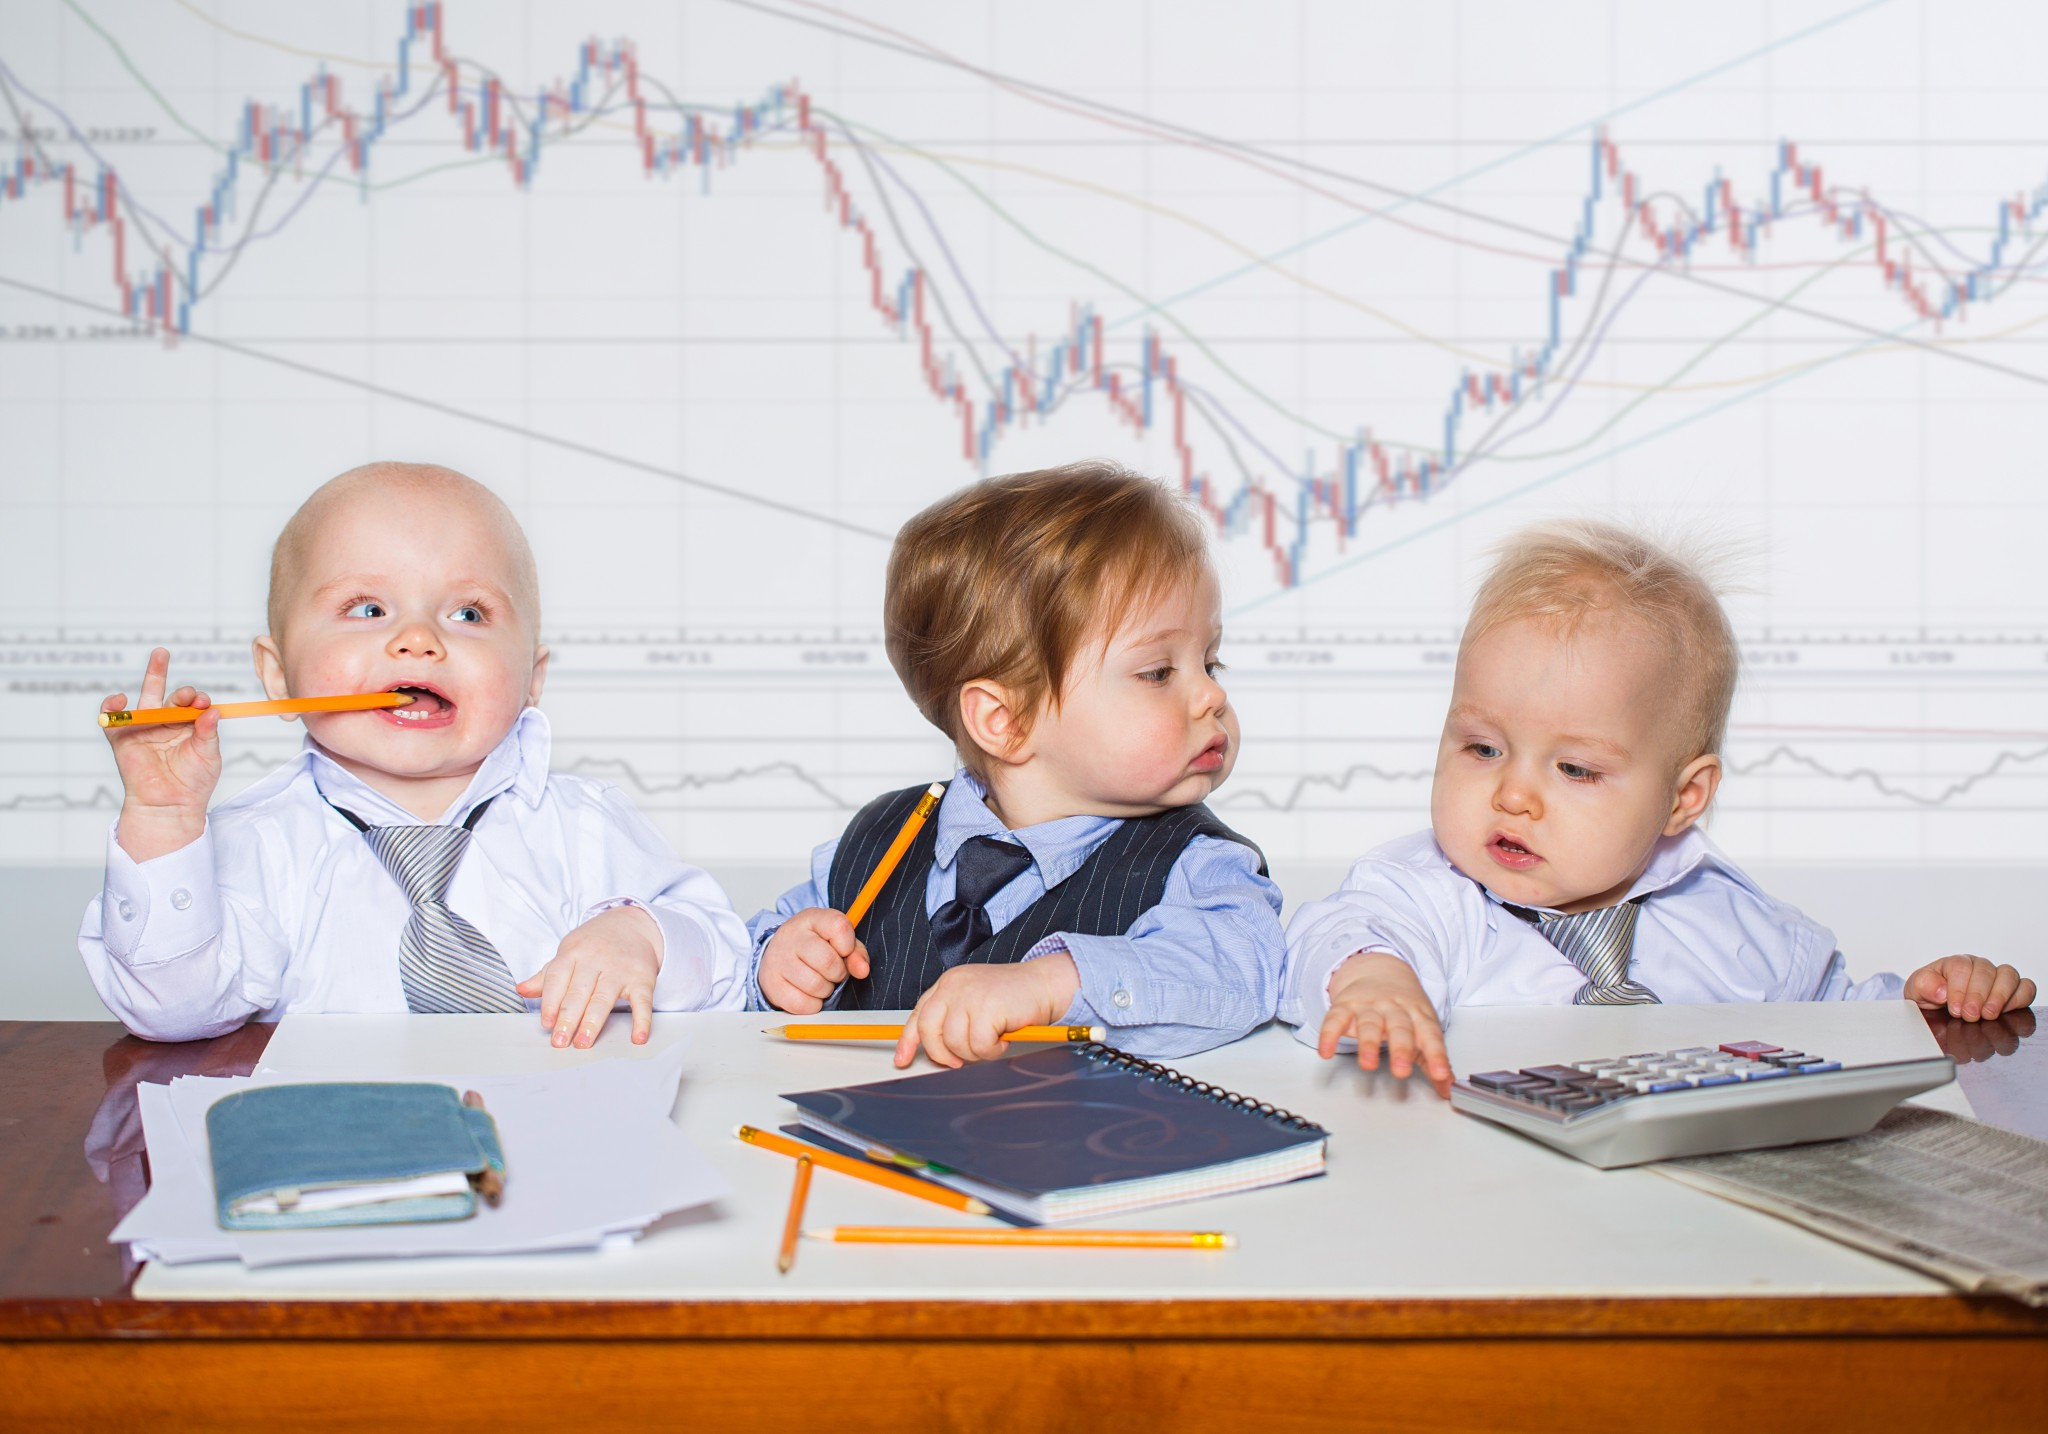 Experience of a babysitting co-op with scrip provides a monetary policy lesson and a debate